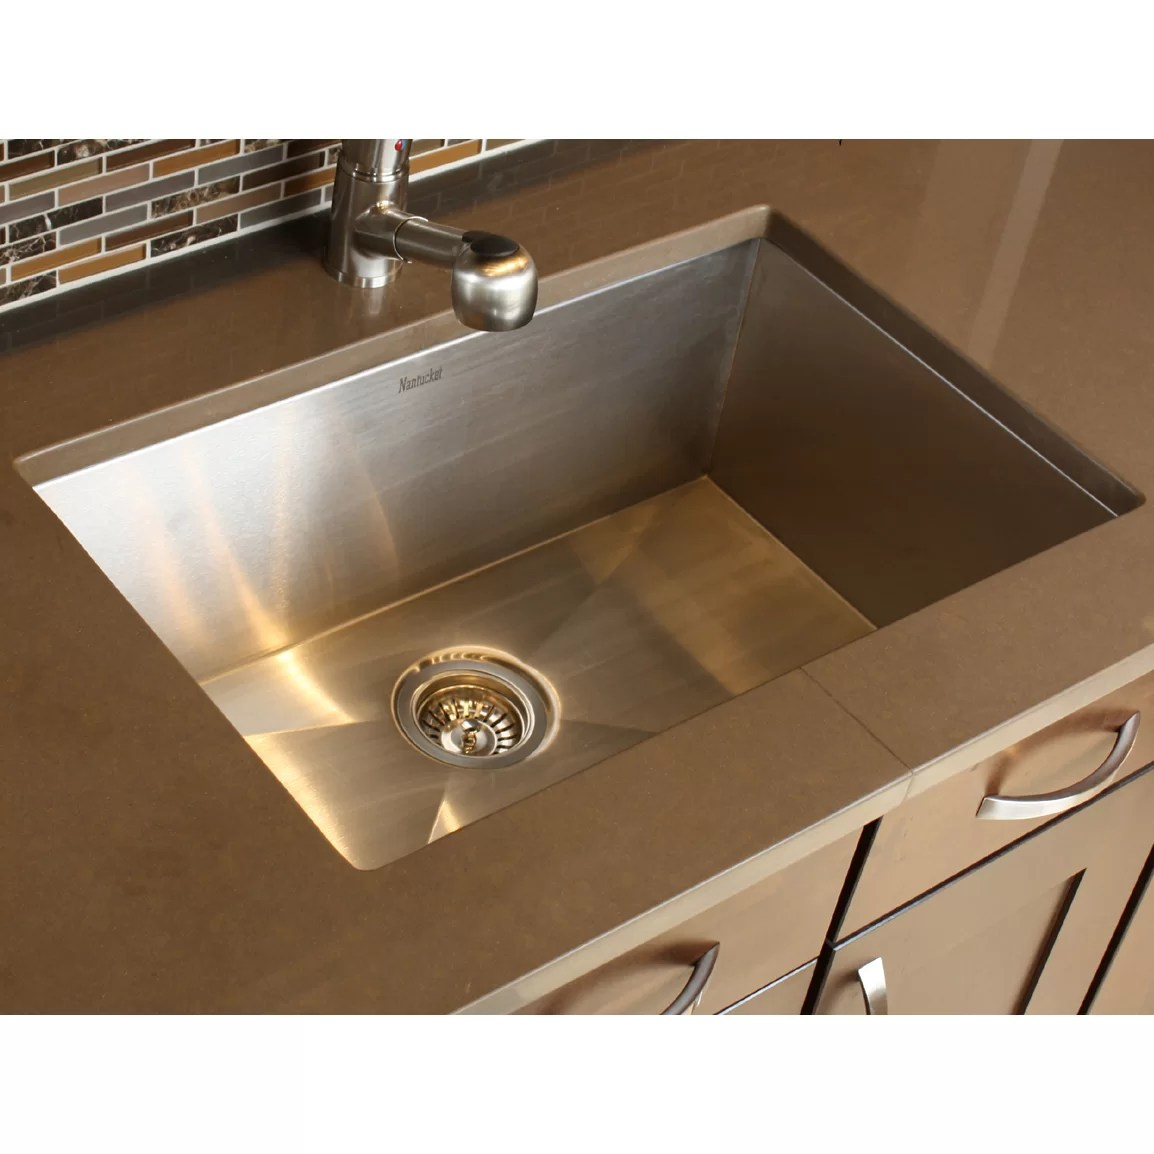 stainless steel single bowl kitchen sink aid stand mixers nantucket sinks pro series 28 quot x 18 large rectangle